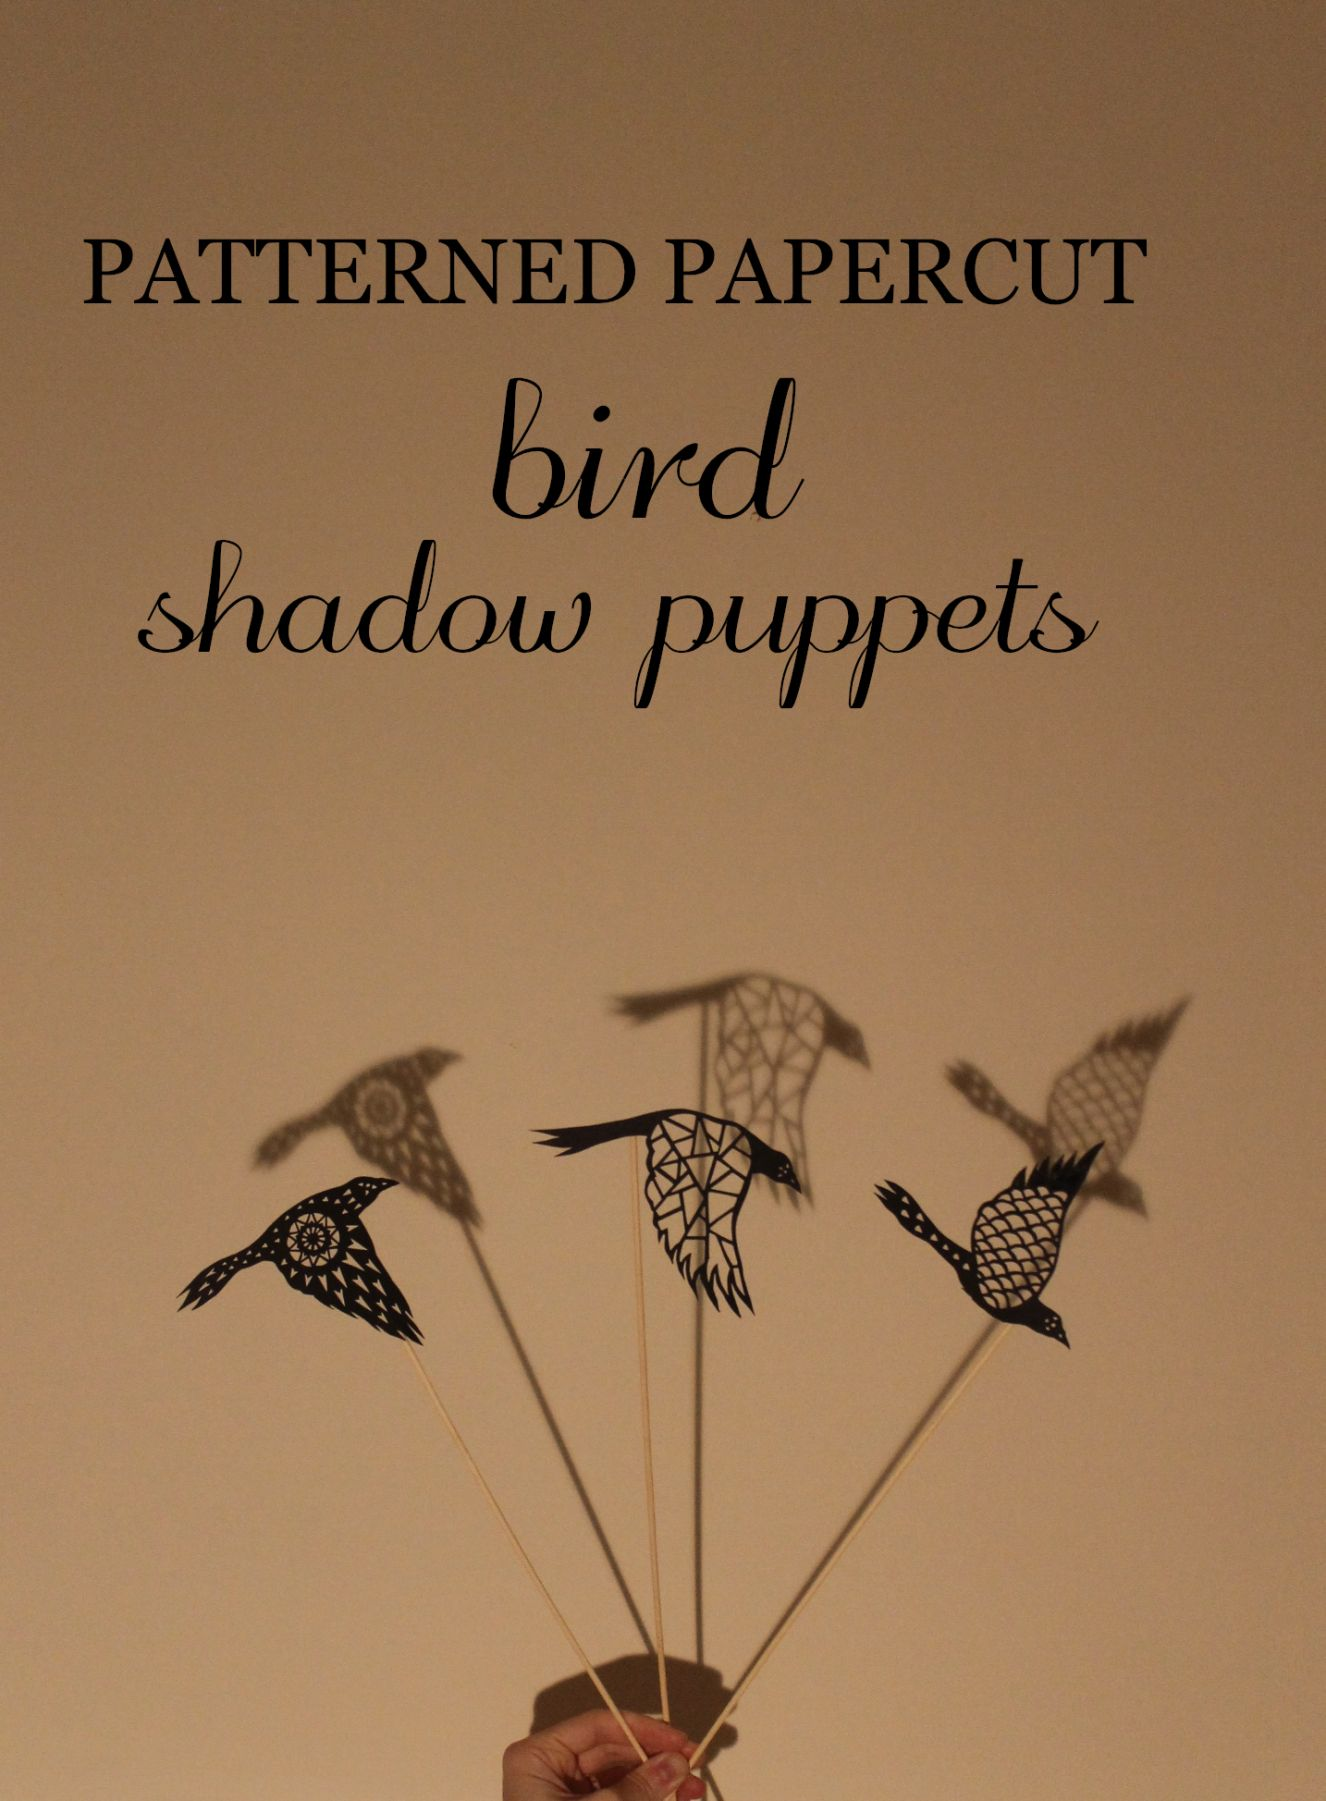 bird_shadow_puppets_title 01_2016